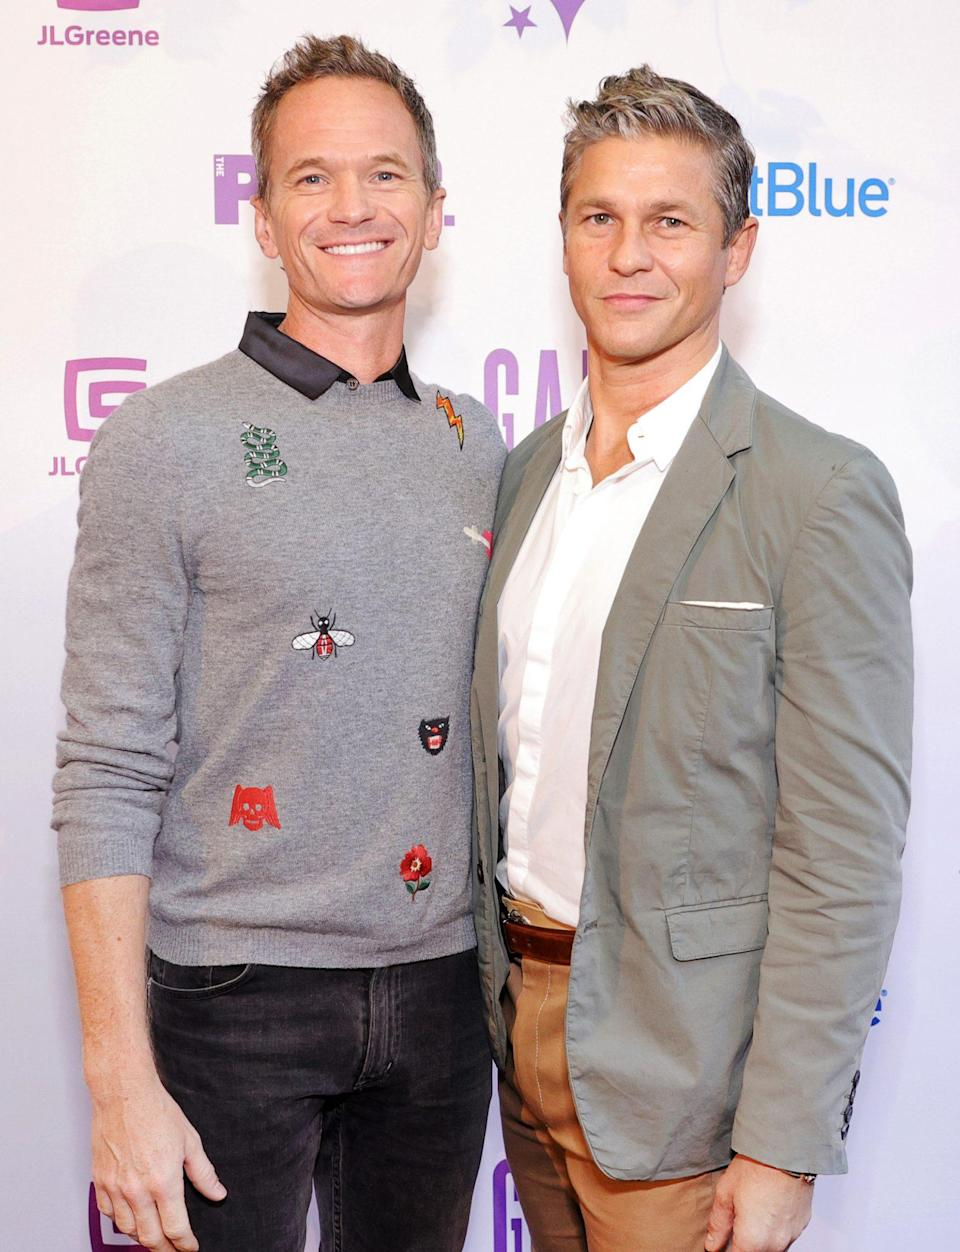 <p>Neil Patrick Harris and David Burtka coordinate in shades of gray on Sept. 20 at The Public Theater's 2021 annual gala at the Delacorte Theater in New York City's Central Park.</p>